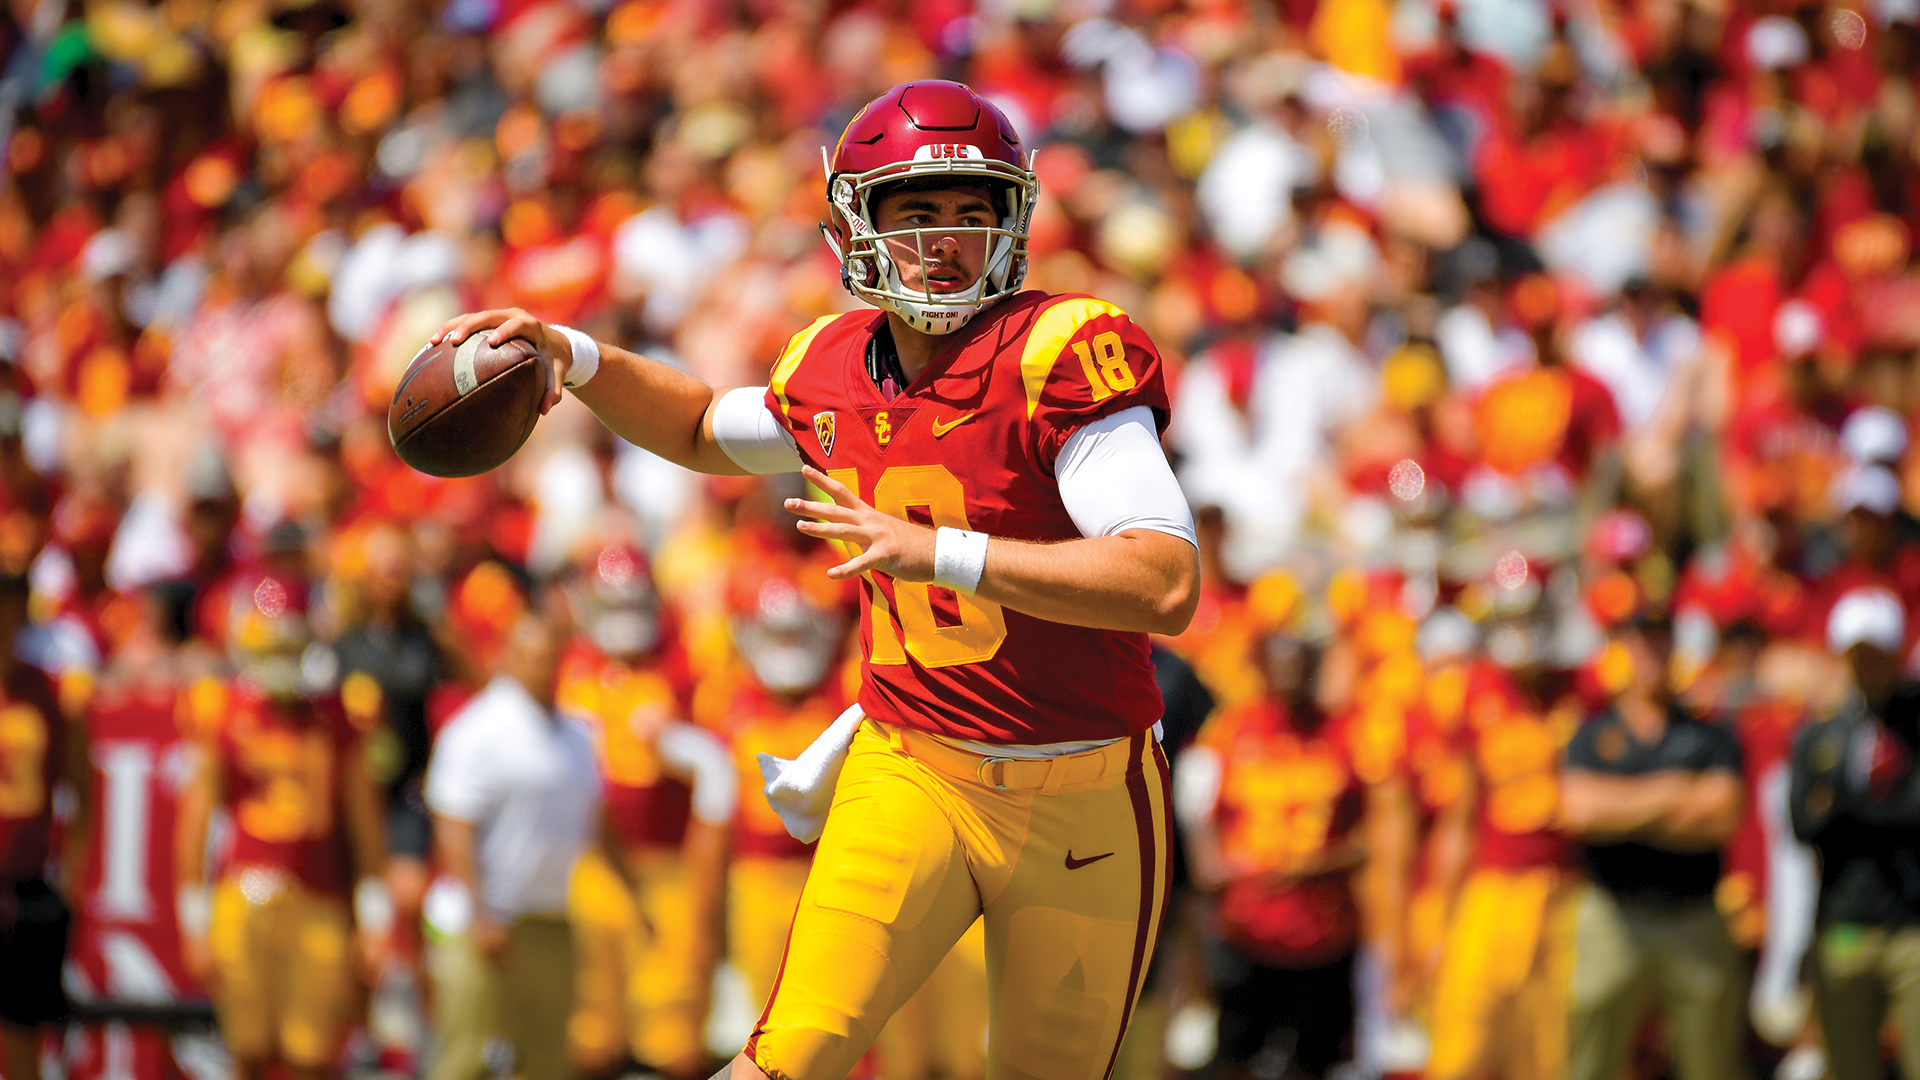 JT Daniels looks for open players during USC's 2018 season opener vs. UNLV